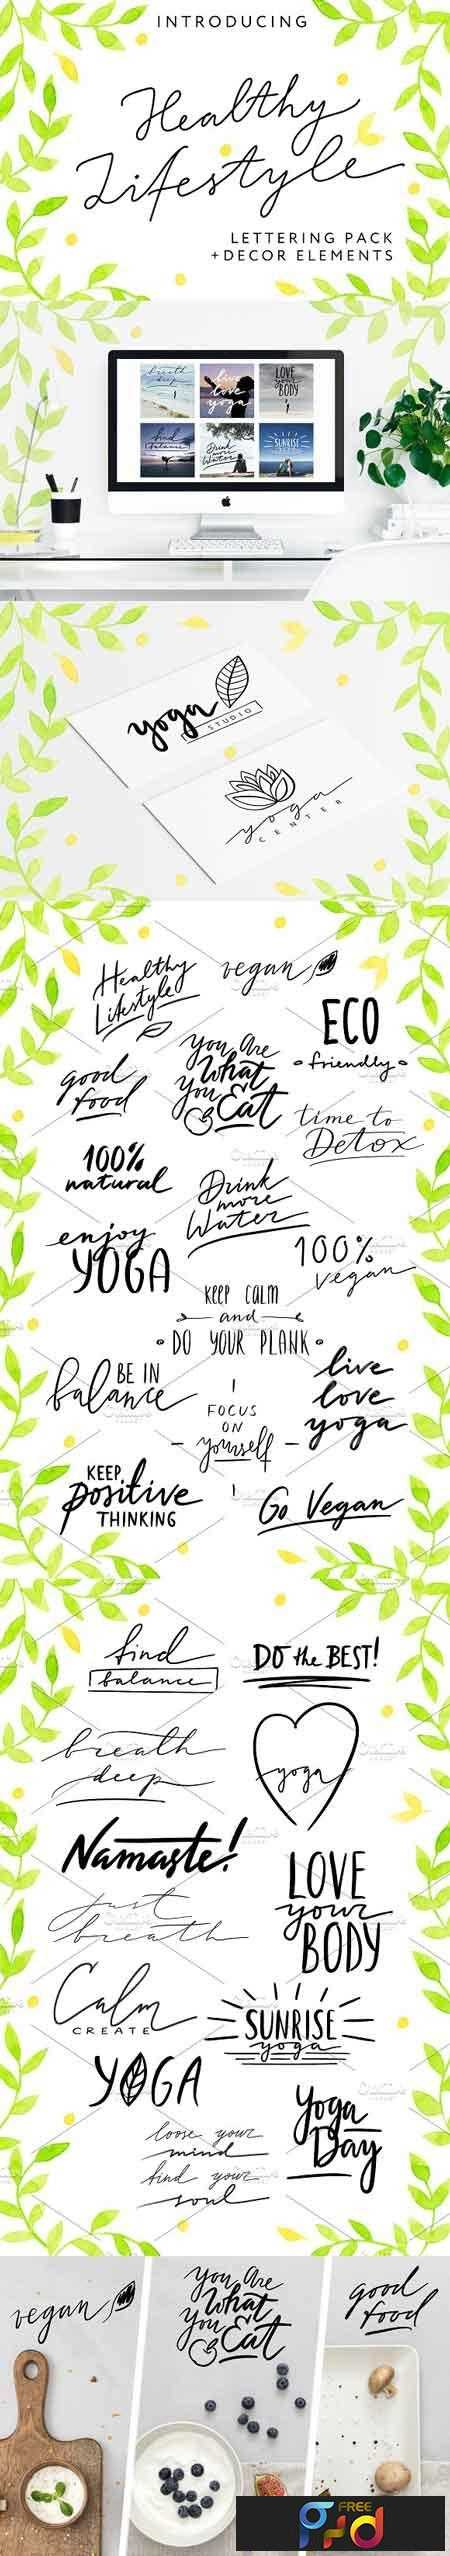 1807075 HEALTHY LIFESTYLE - Lettering Pack 2554856 1